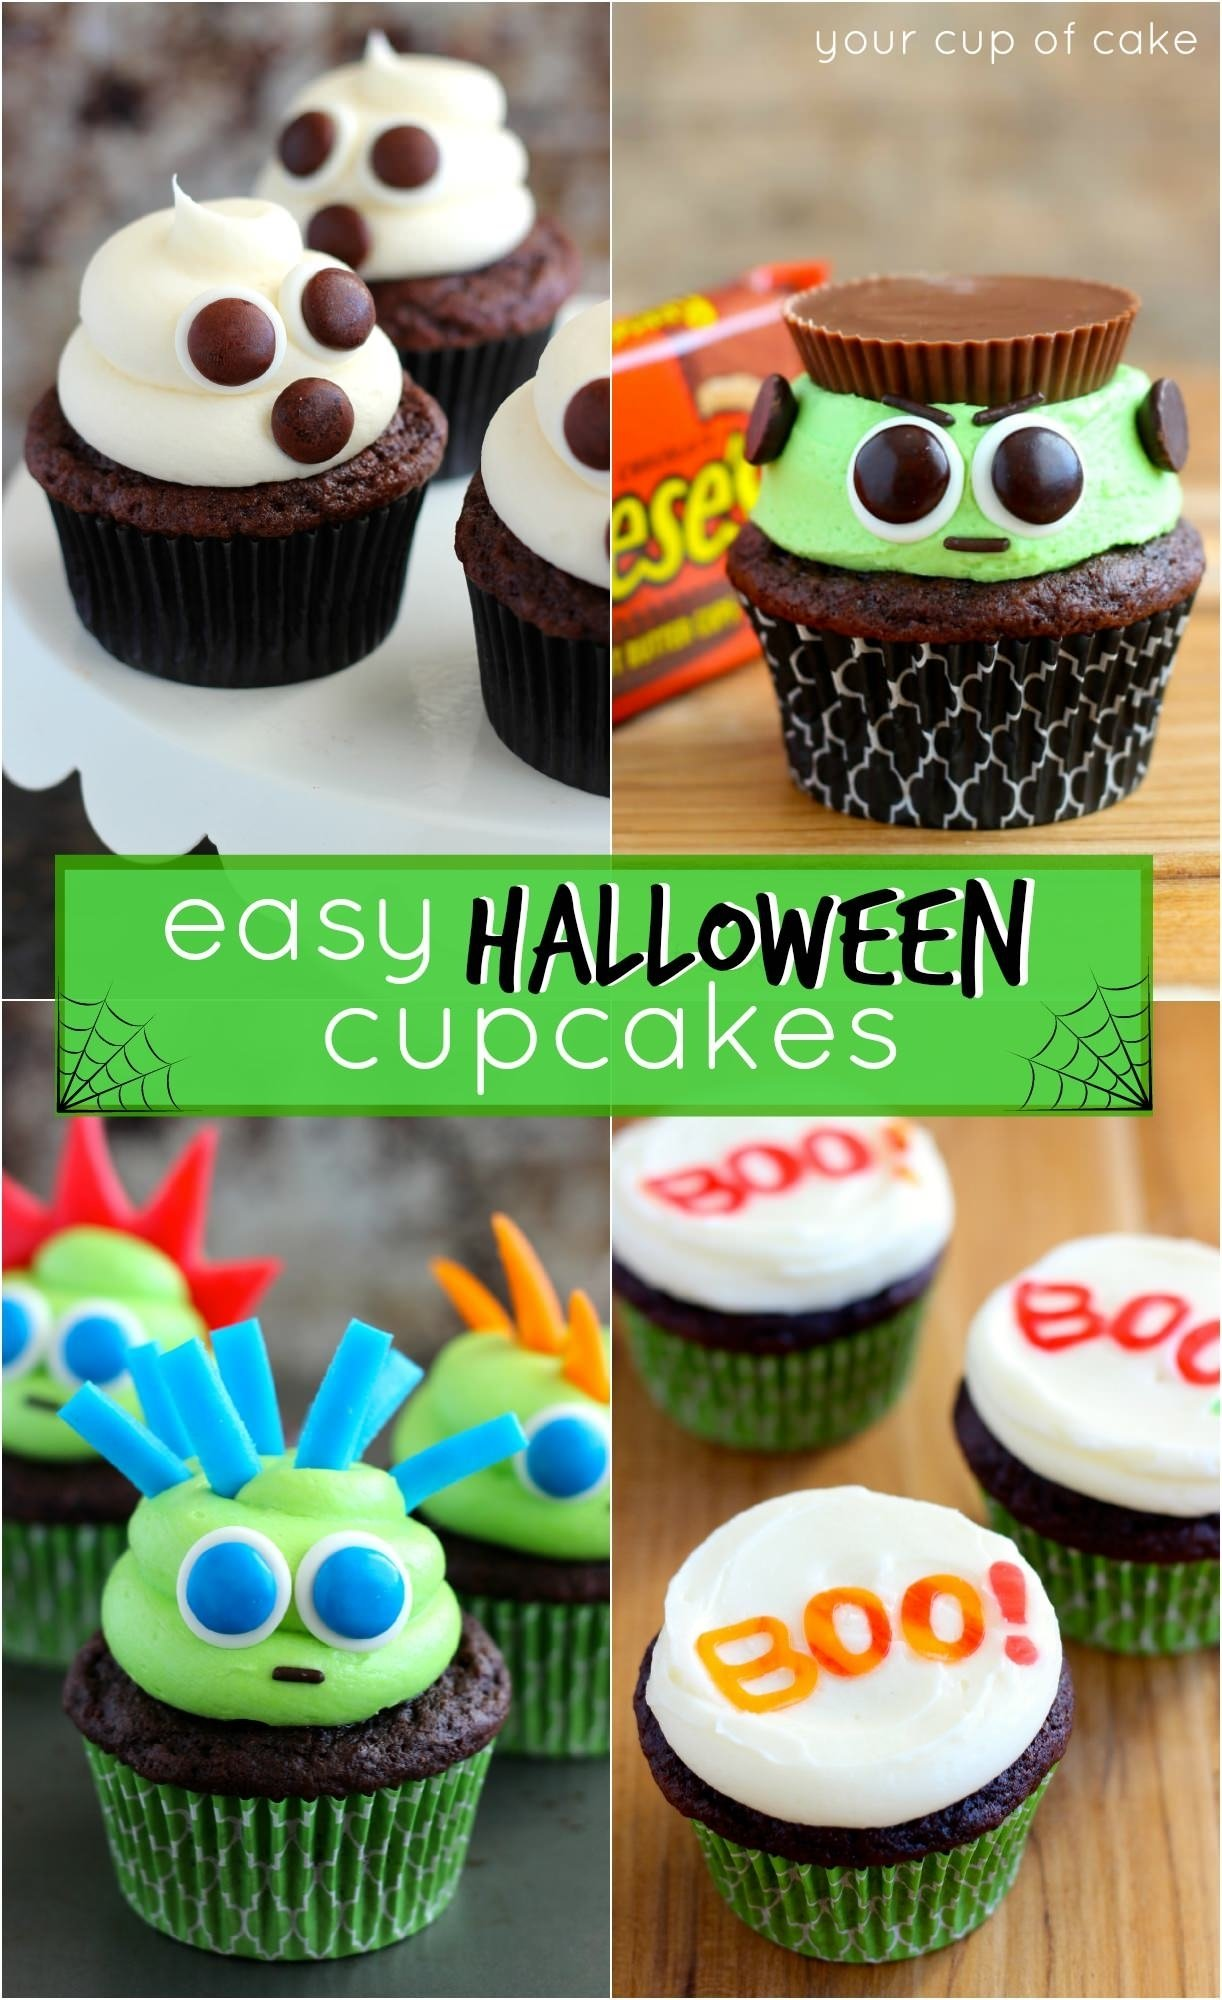 pumpkin patch cupcakes - your cup of cake